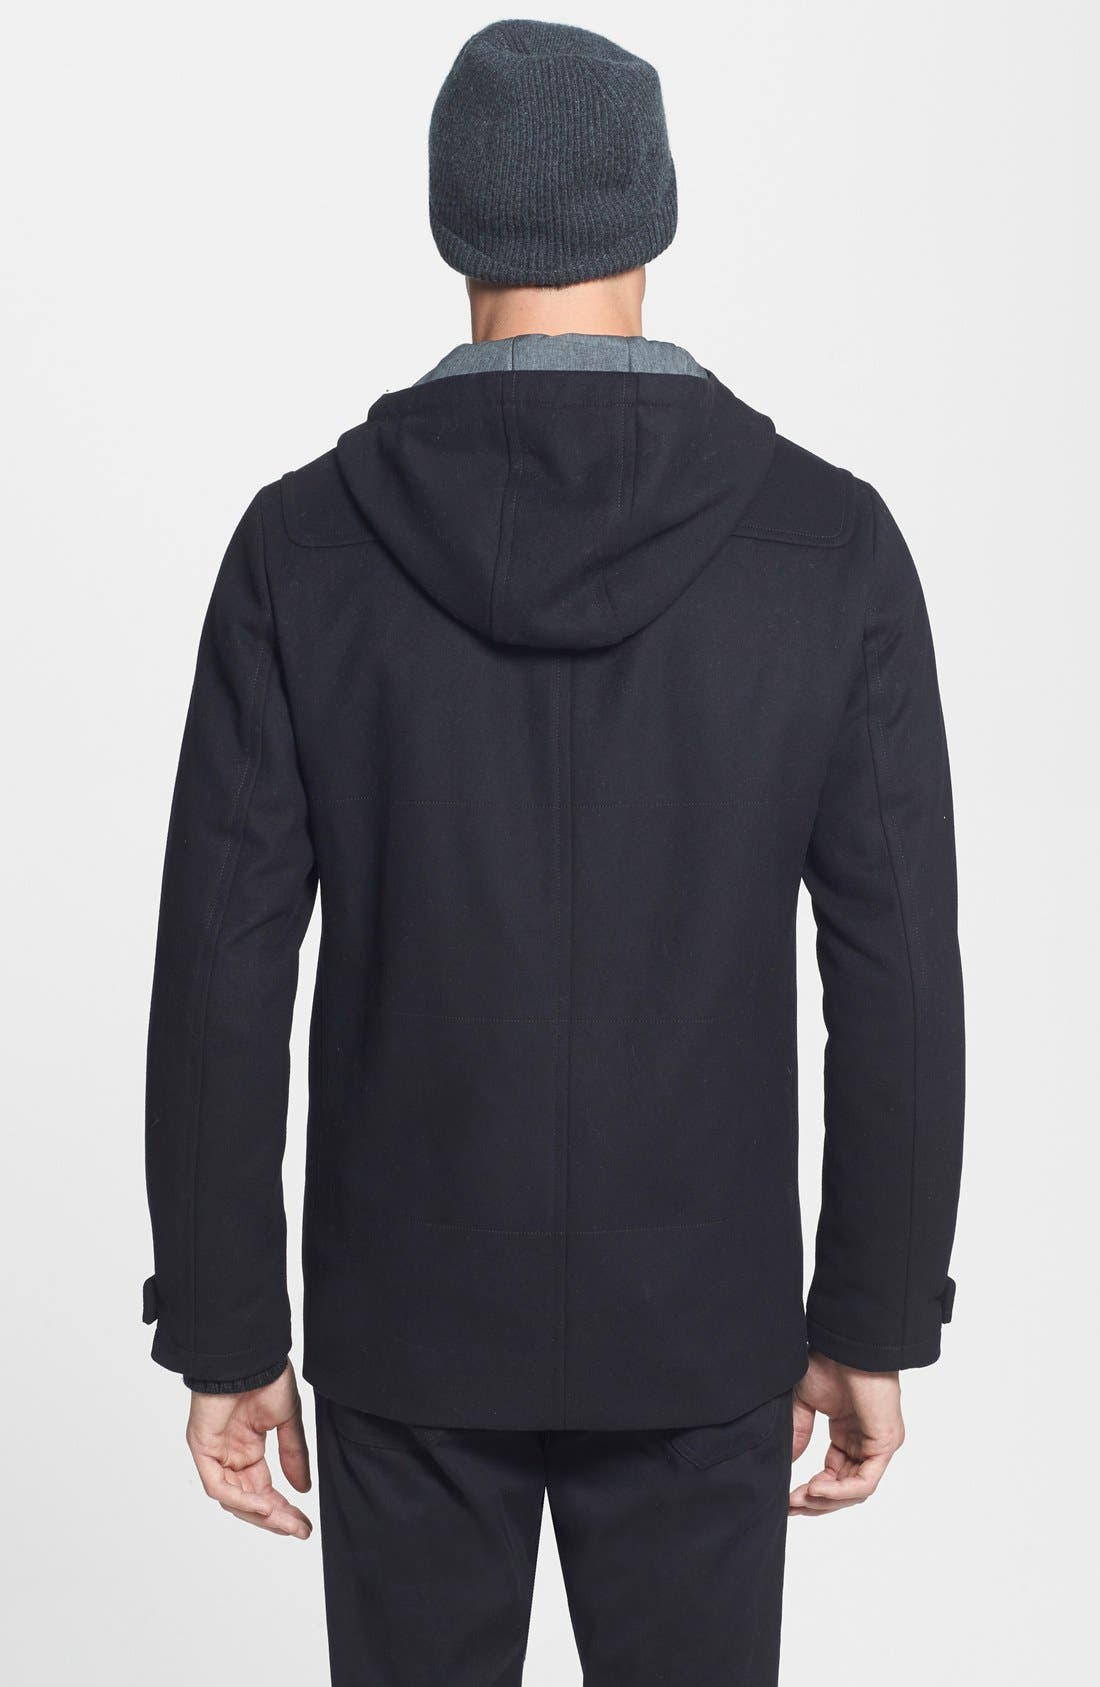 'City' Wool Blend Hooded Toggle Coat,                             Alternate thumbnail 4, color,                             001